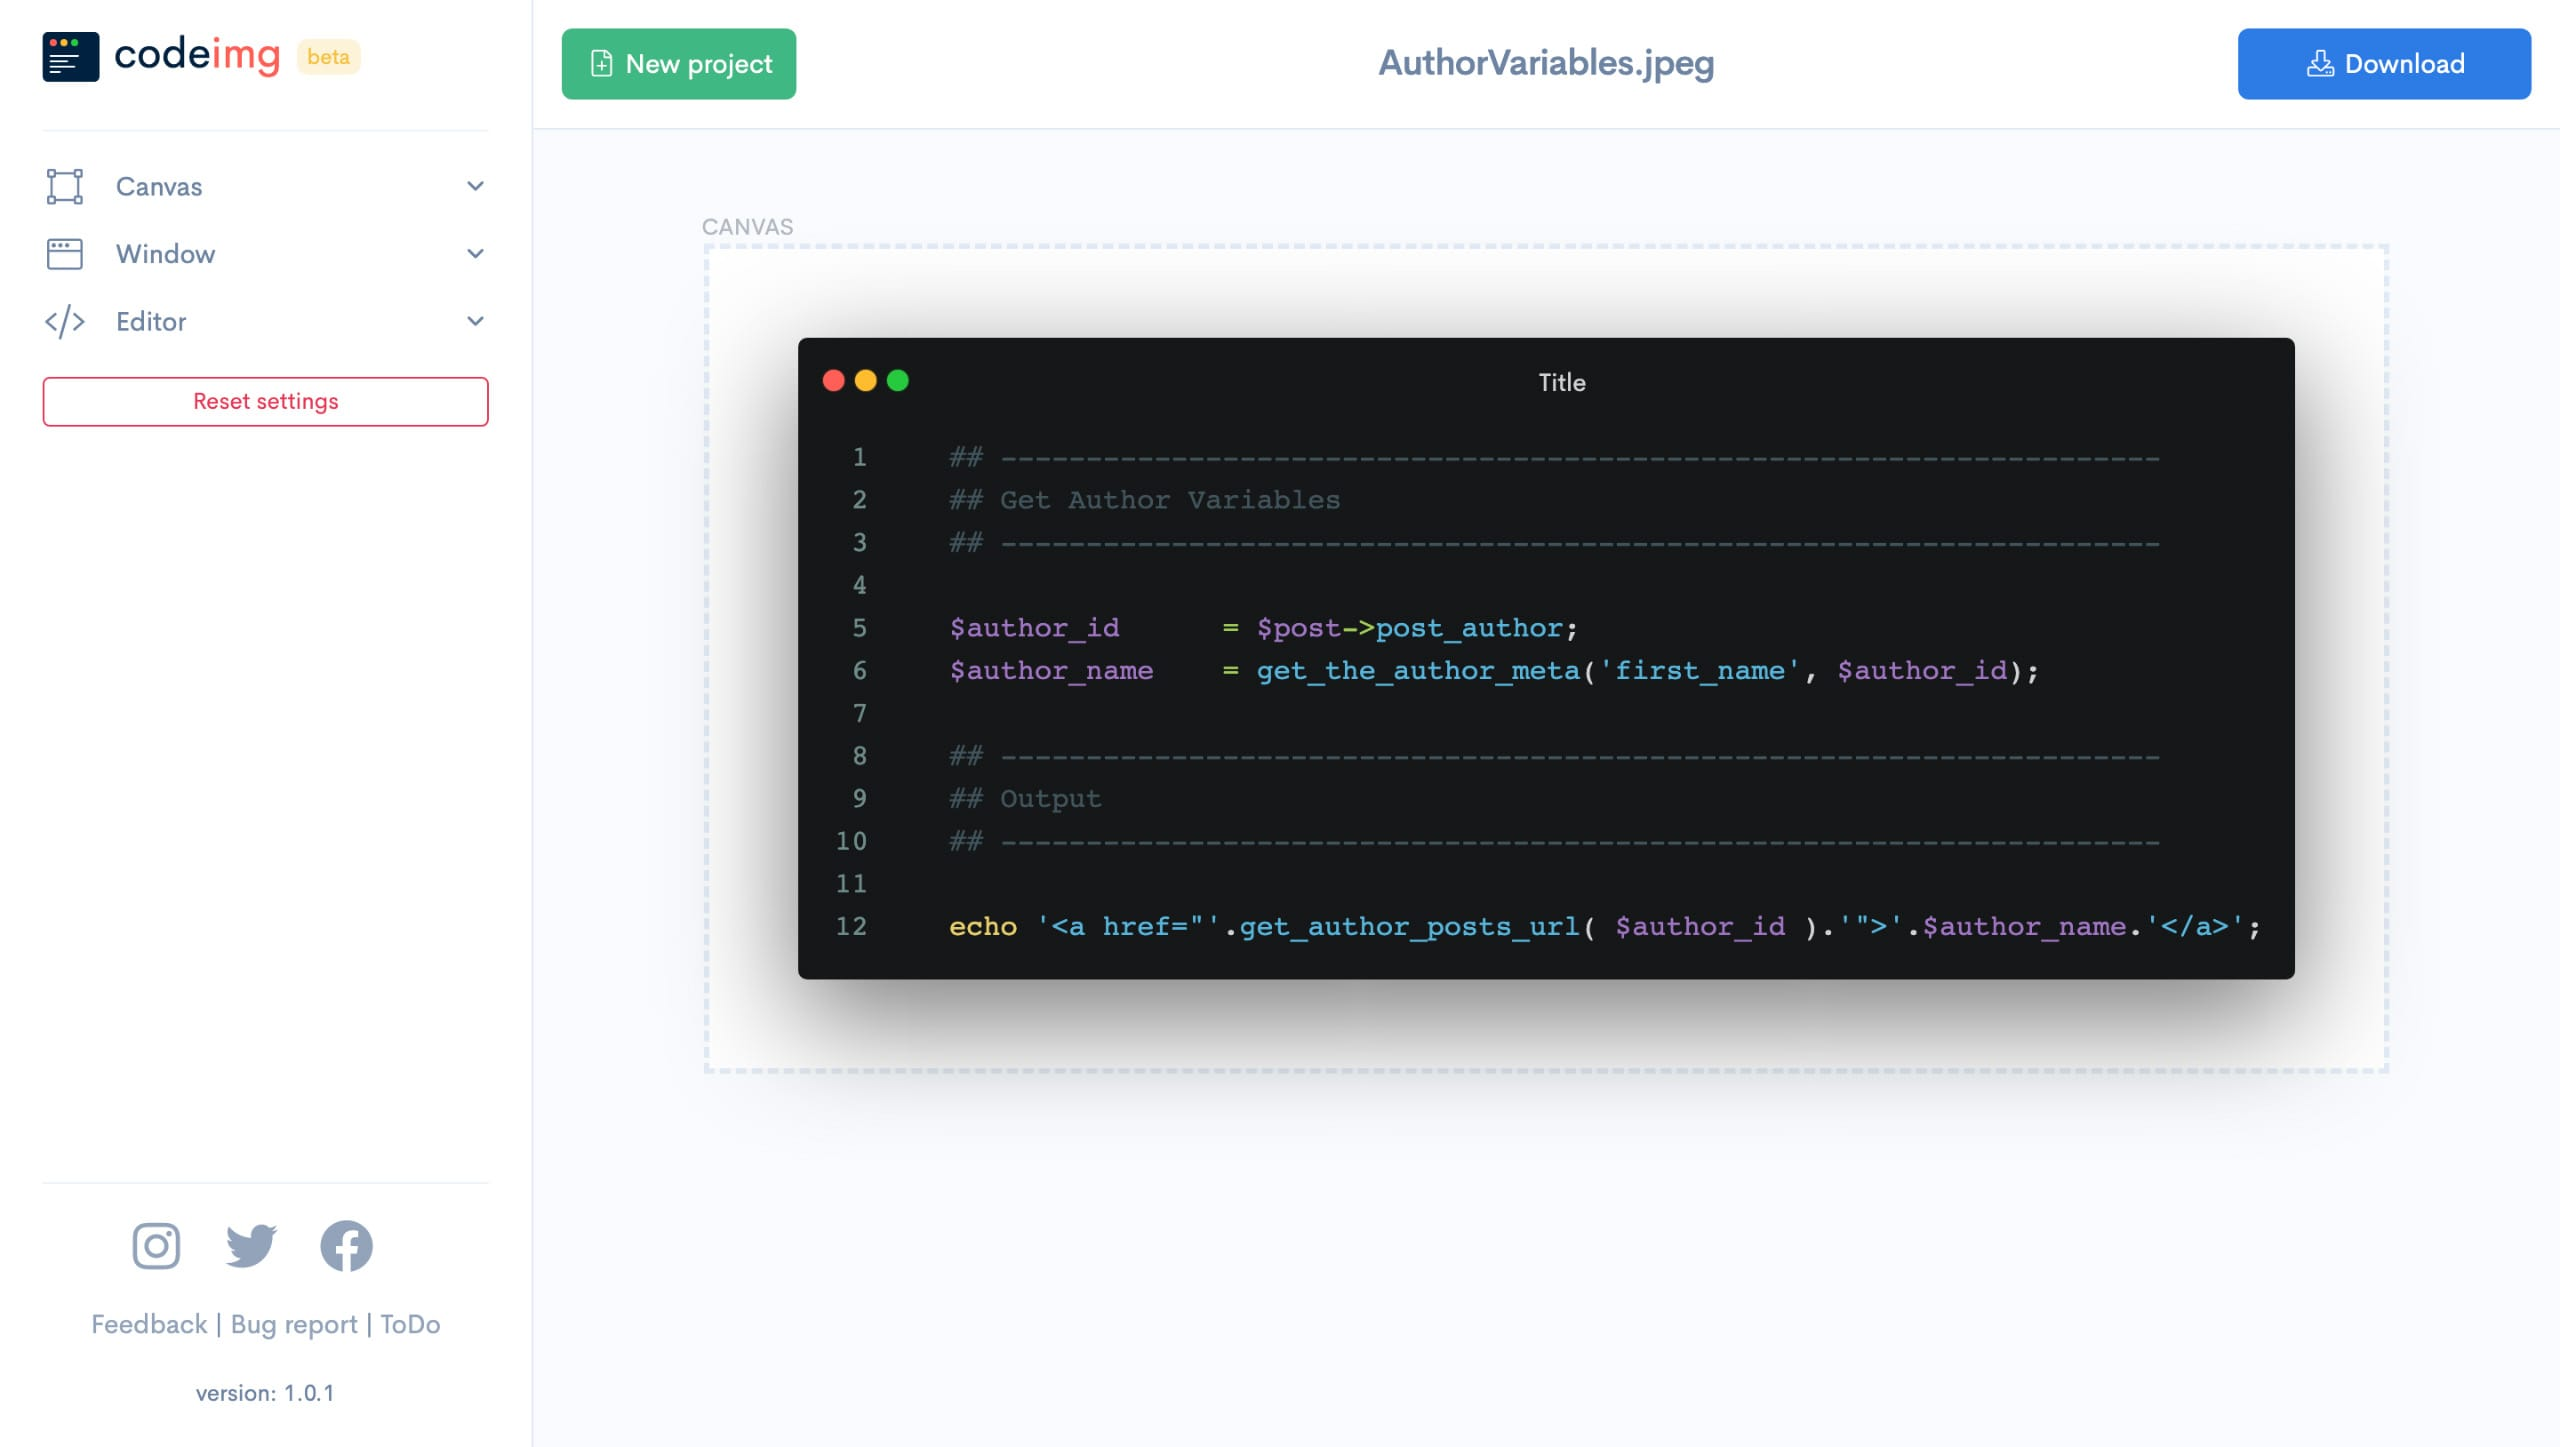 Codeimg.io Website Screenshot